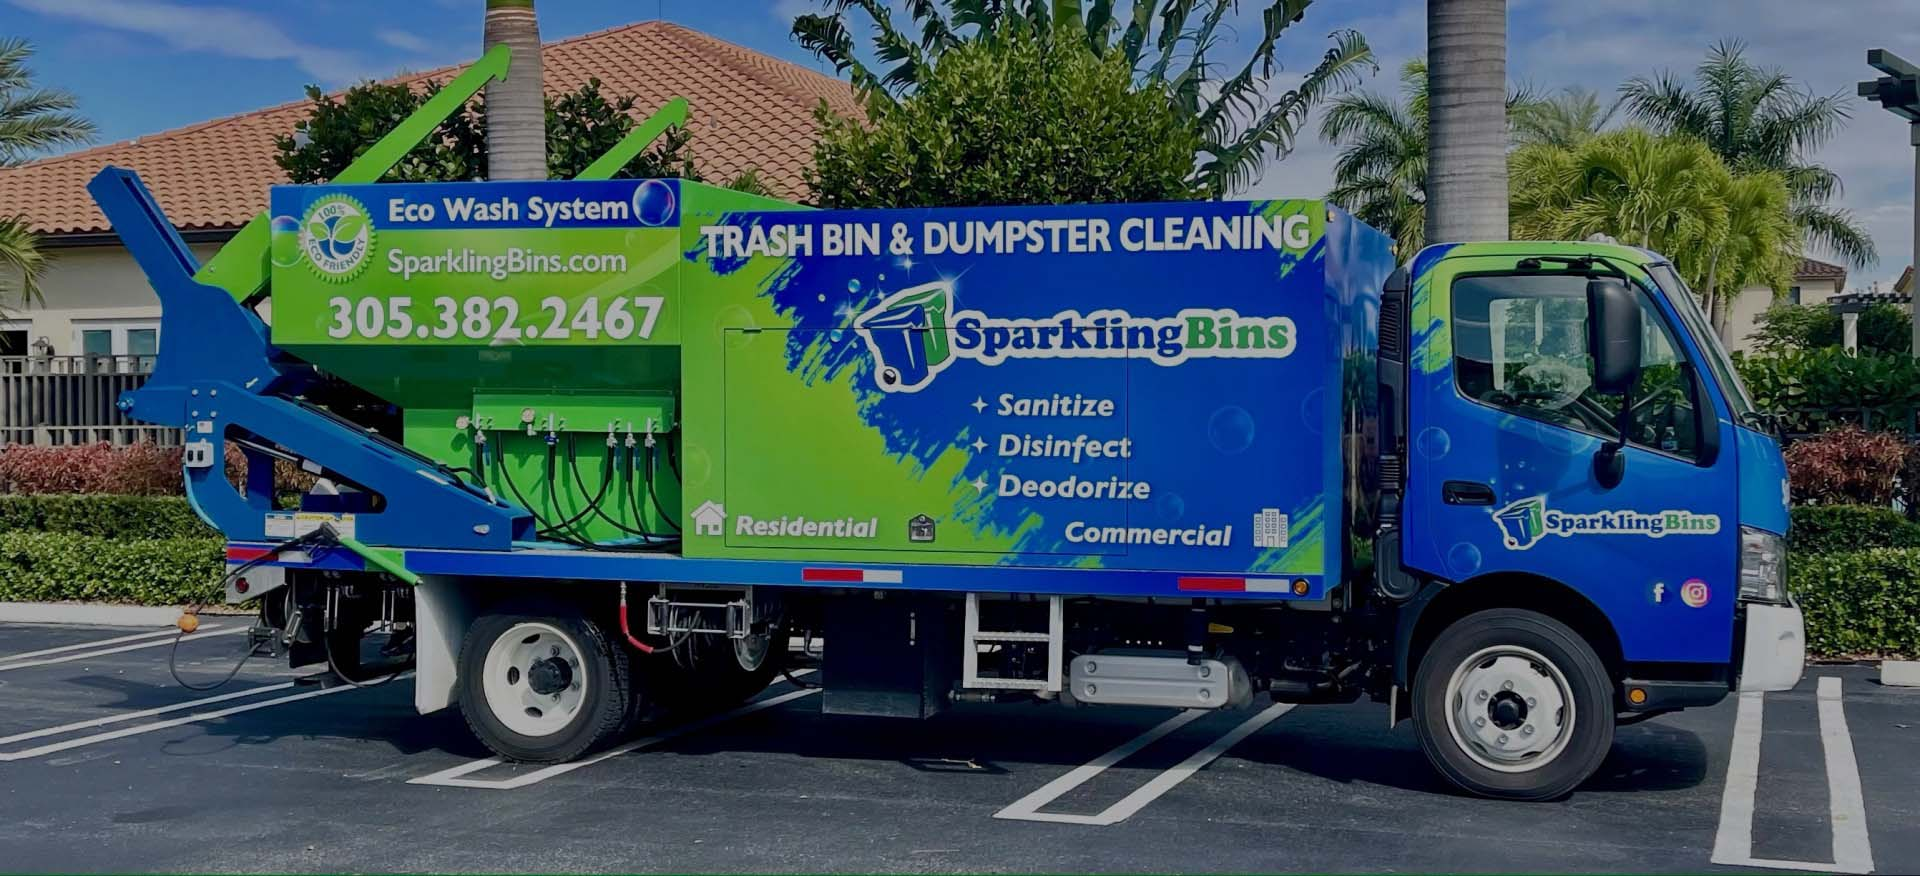 images/SPARKLING_BINS_TRASH_BIN_CLEANING_SYSTEMS.jpg